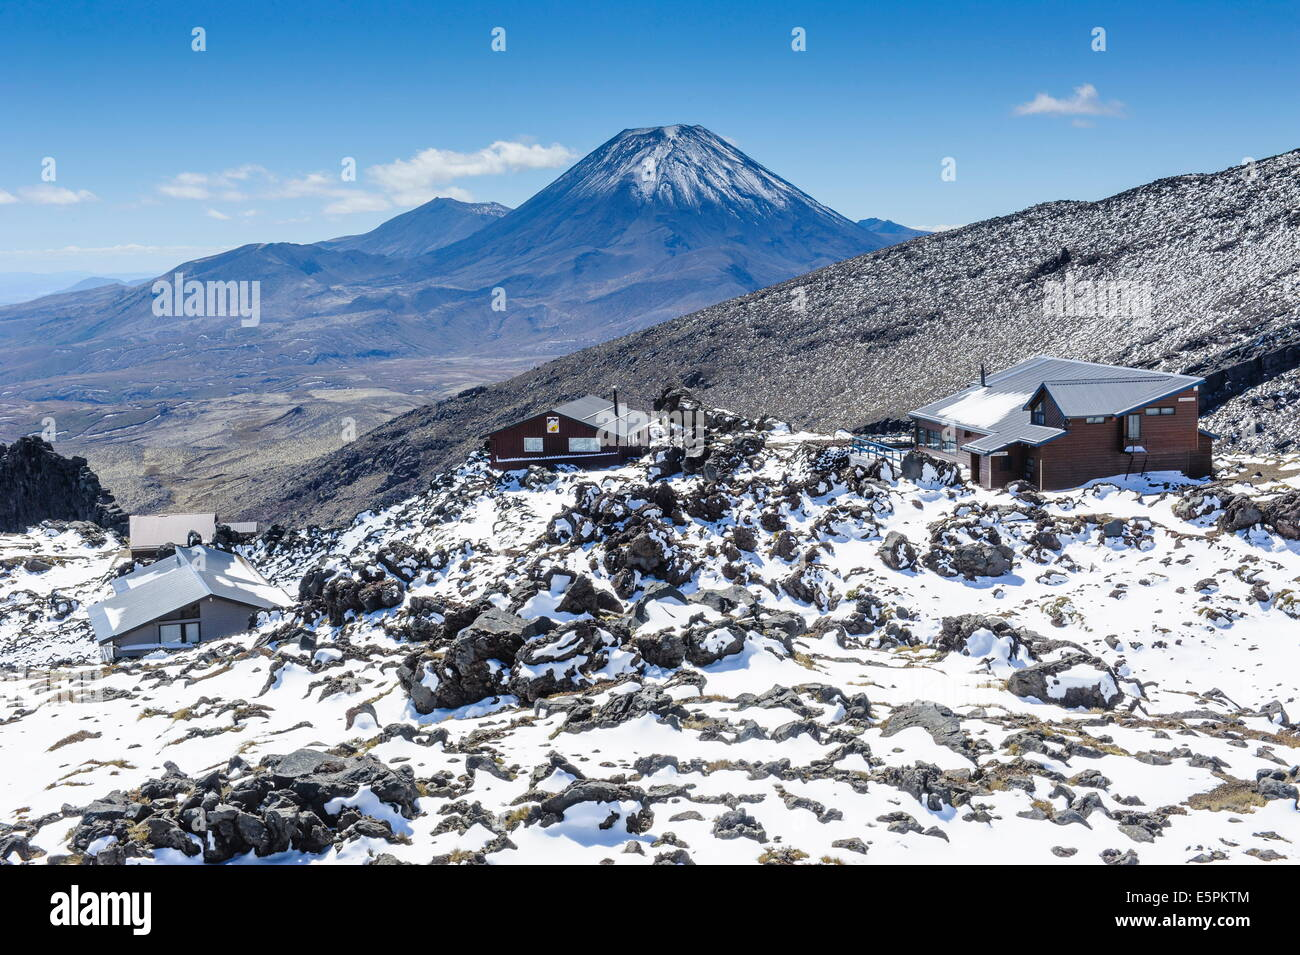 View from Mount Ruapehu of Mount Ngauruhoe, Tongariro National Park, UNESCO Site, North Island, New Zealand Stock Photo